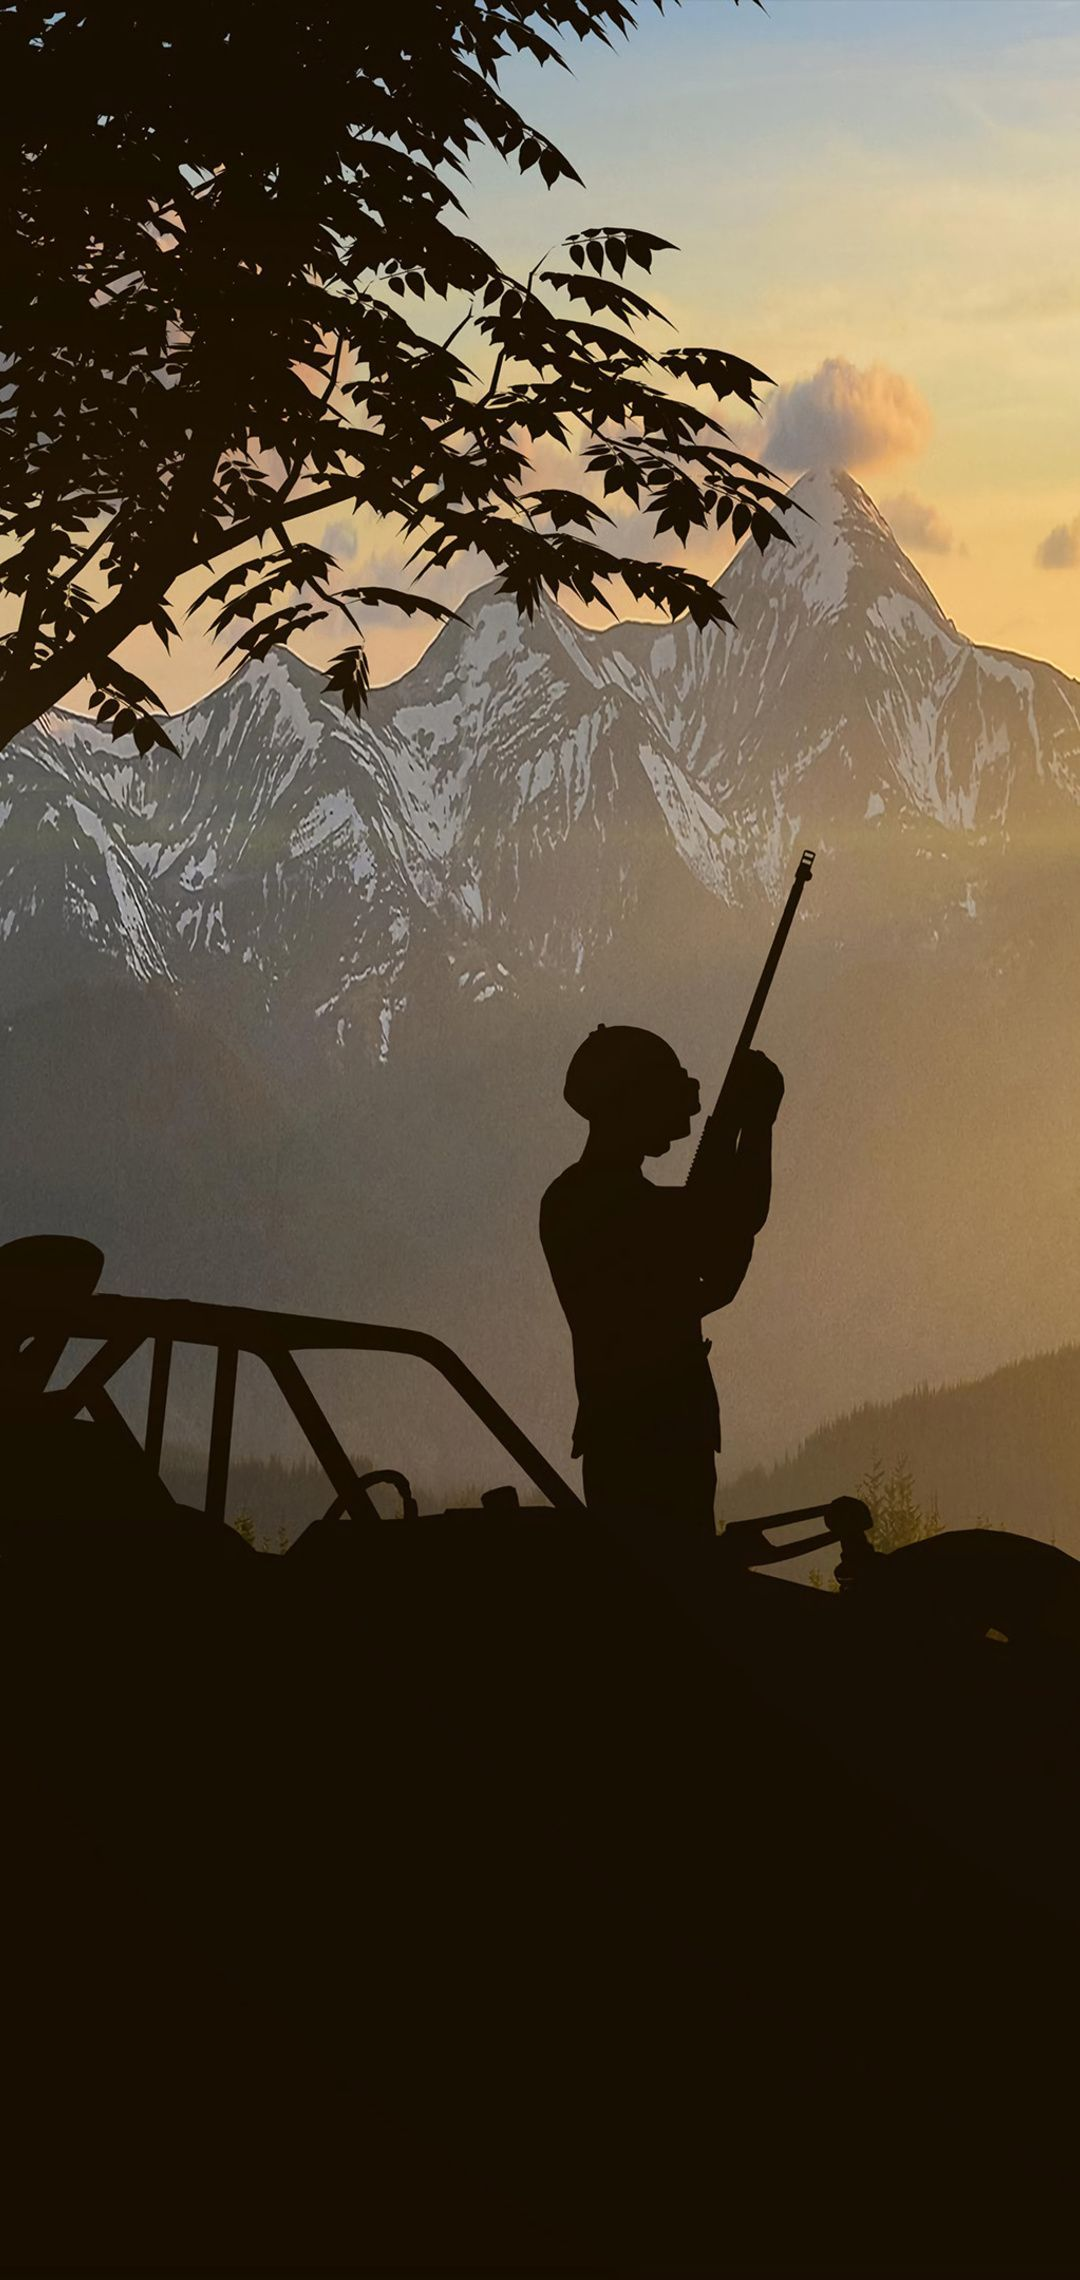 Pubg Silhouette 4k Wallpapers | hdqwalls.com in 2020 ...